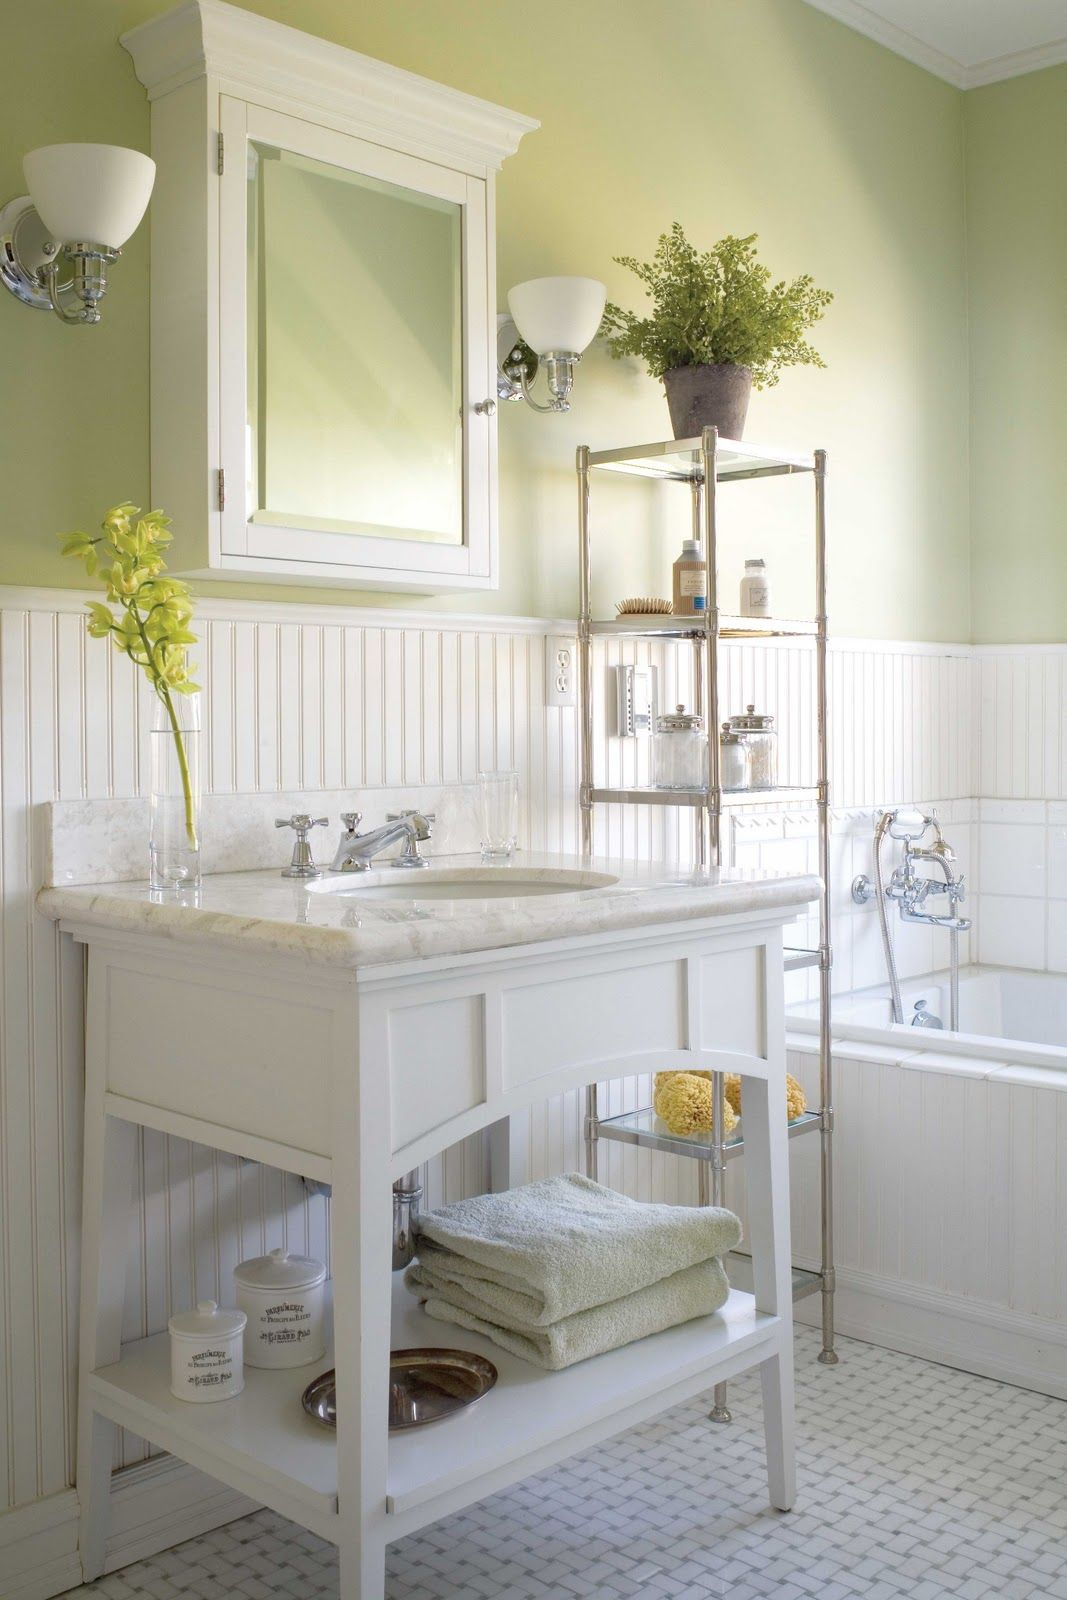 Pin by Marcia Brown on Bathroom Ideas | Pinterest | Cottage house ...